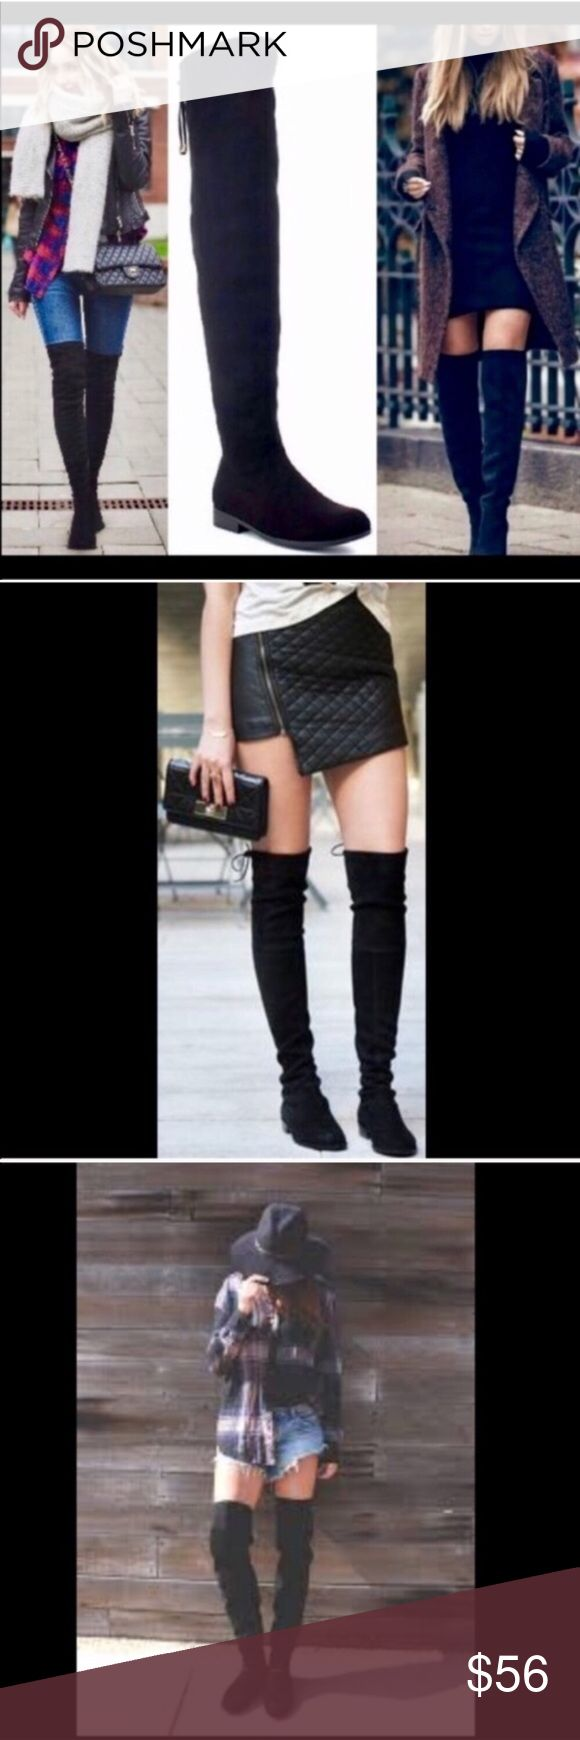 """BEST SELLERBlack Over-the-Knee Boots Drawstring top. Exceptionally soft faux suede.  Inside zipper runs from foot to mid lower leg. Slightly rounded toe. Fabric has give to it. Fits true to size. Approximate measurements, leg opening, 17"""", calf, 15"""", 25"""" shaft height. Center image of covershot and image 4 of actual boots. As with all merchandise, seller not responsible for fit nor comfort. Brand new retail. No trades, no off App transactions or negotiations.  ❗️PRICE IS FIRM UNLESS BUNDLED❗️…"""